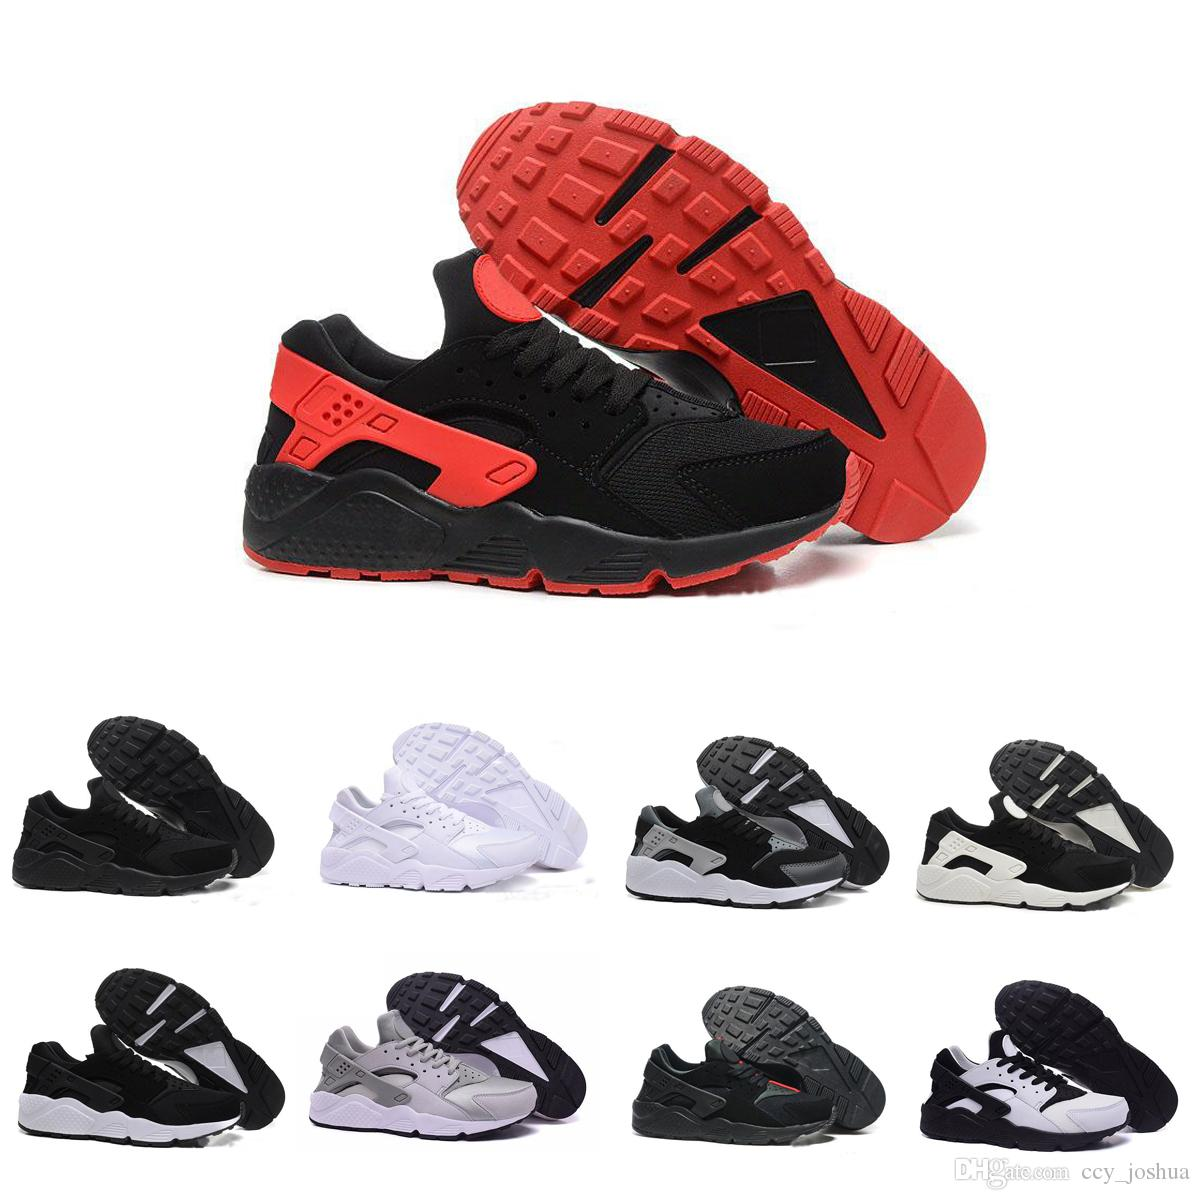 f8966bae5c88 2015 Cheap Air Huarache 2 II Ultra Classical All White And Black Huaraches  Shoes Men Women Sneakers Casual Shoes Size 36 45 Blue Shoes Clogs For Women  From ...